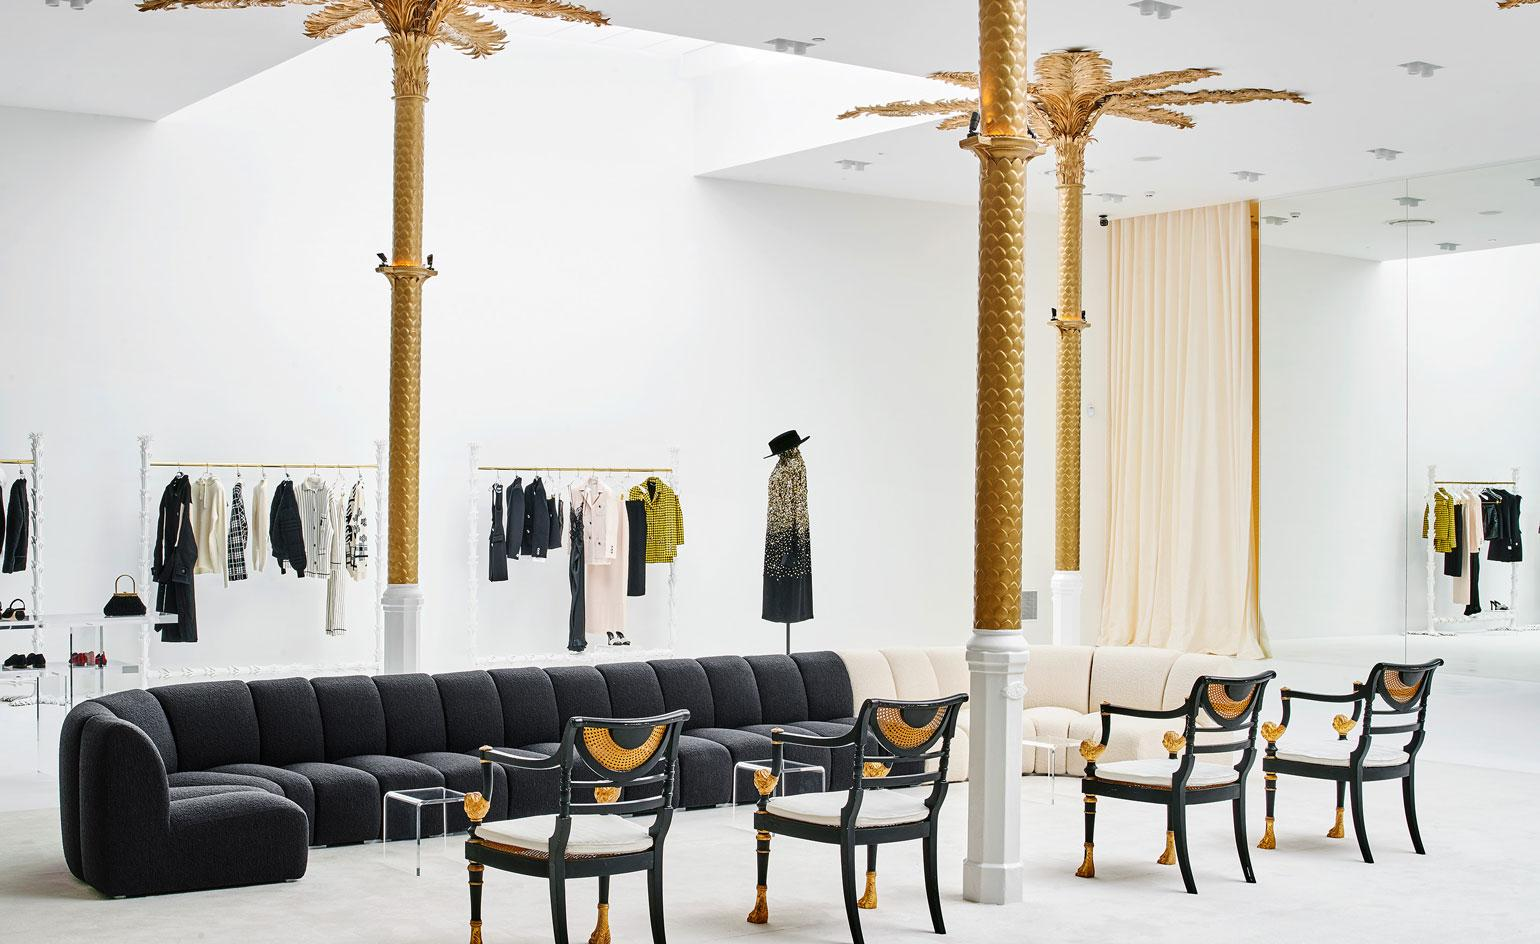 Barcelona's Darial concept store boasts gold palm trees and art deco glamour